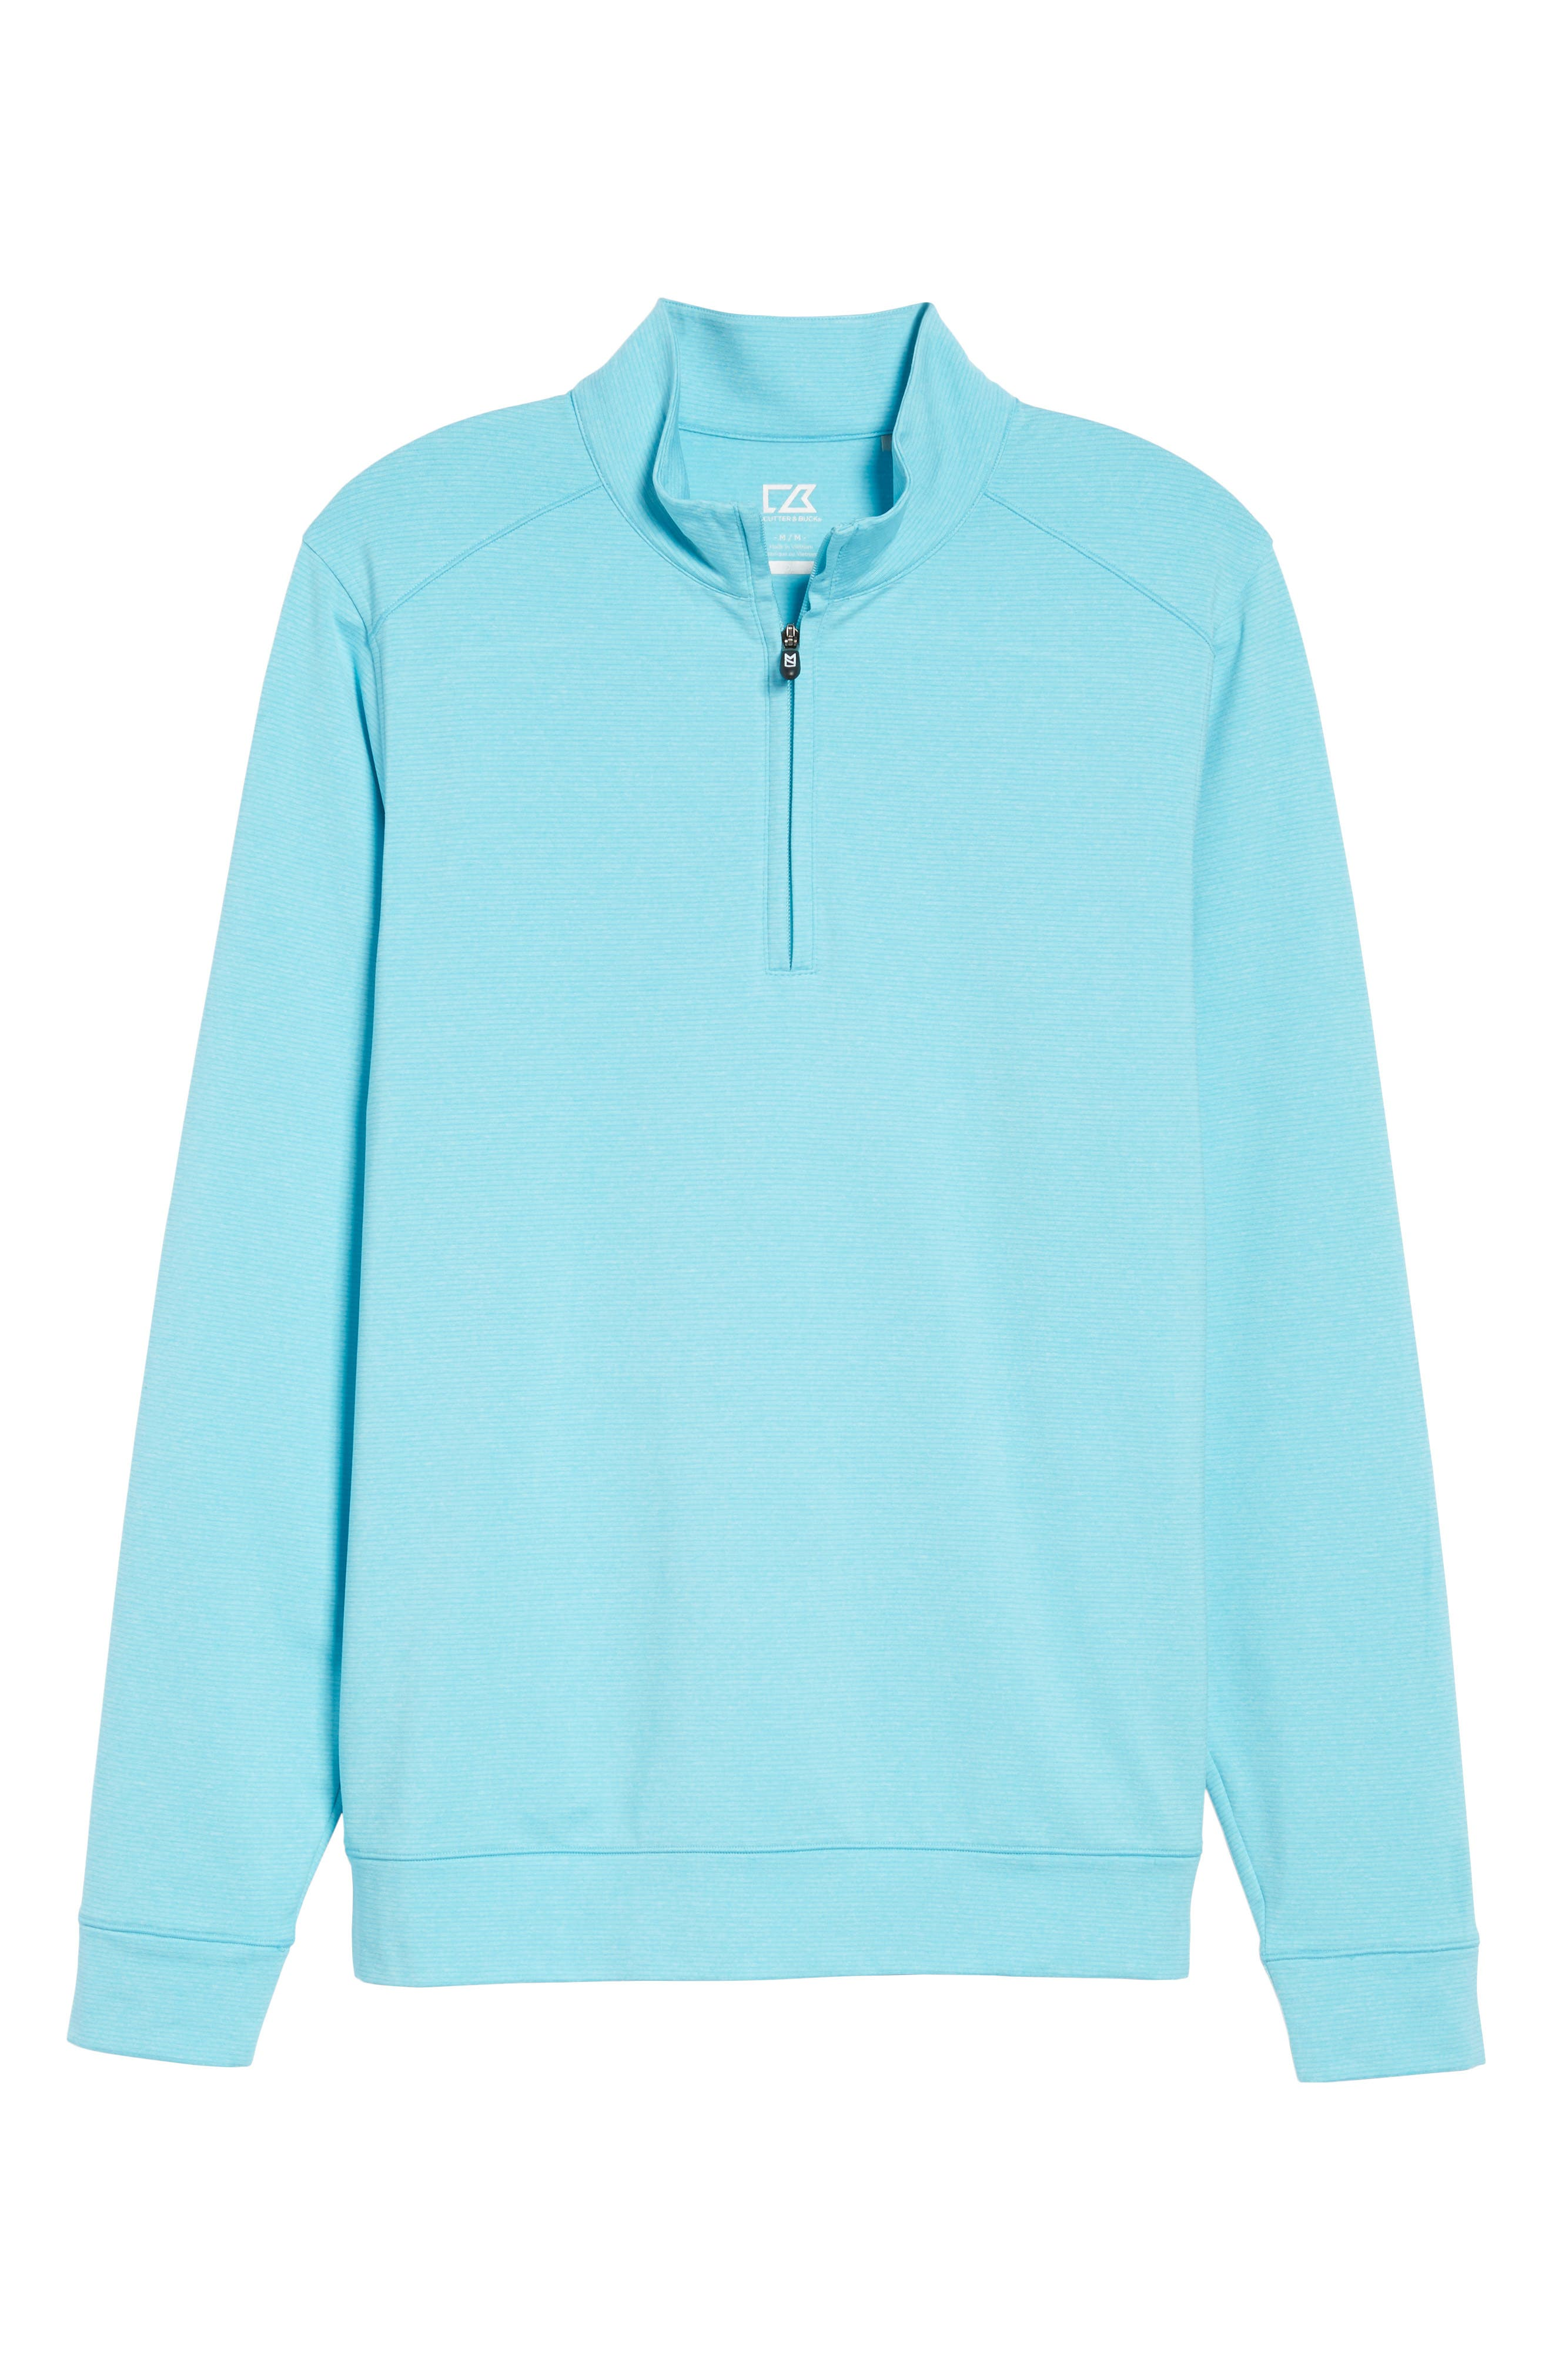 'Shoreline' Quarter Zip Pullover,                             Alternate thumbnail 6, color,                             ARUBA HEATHER